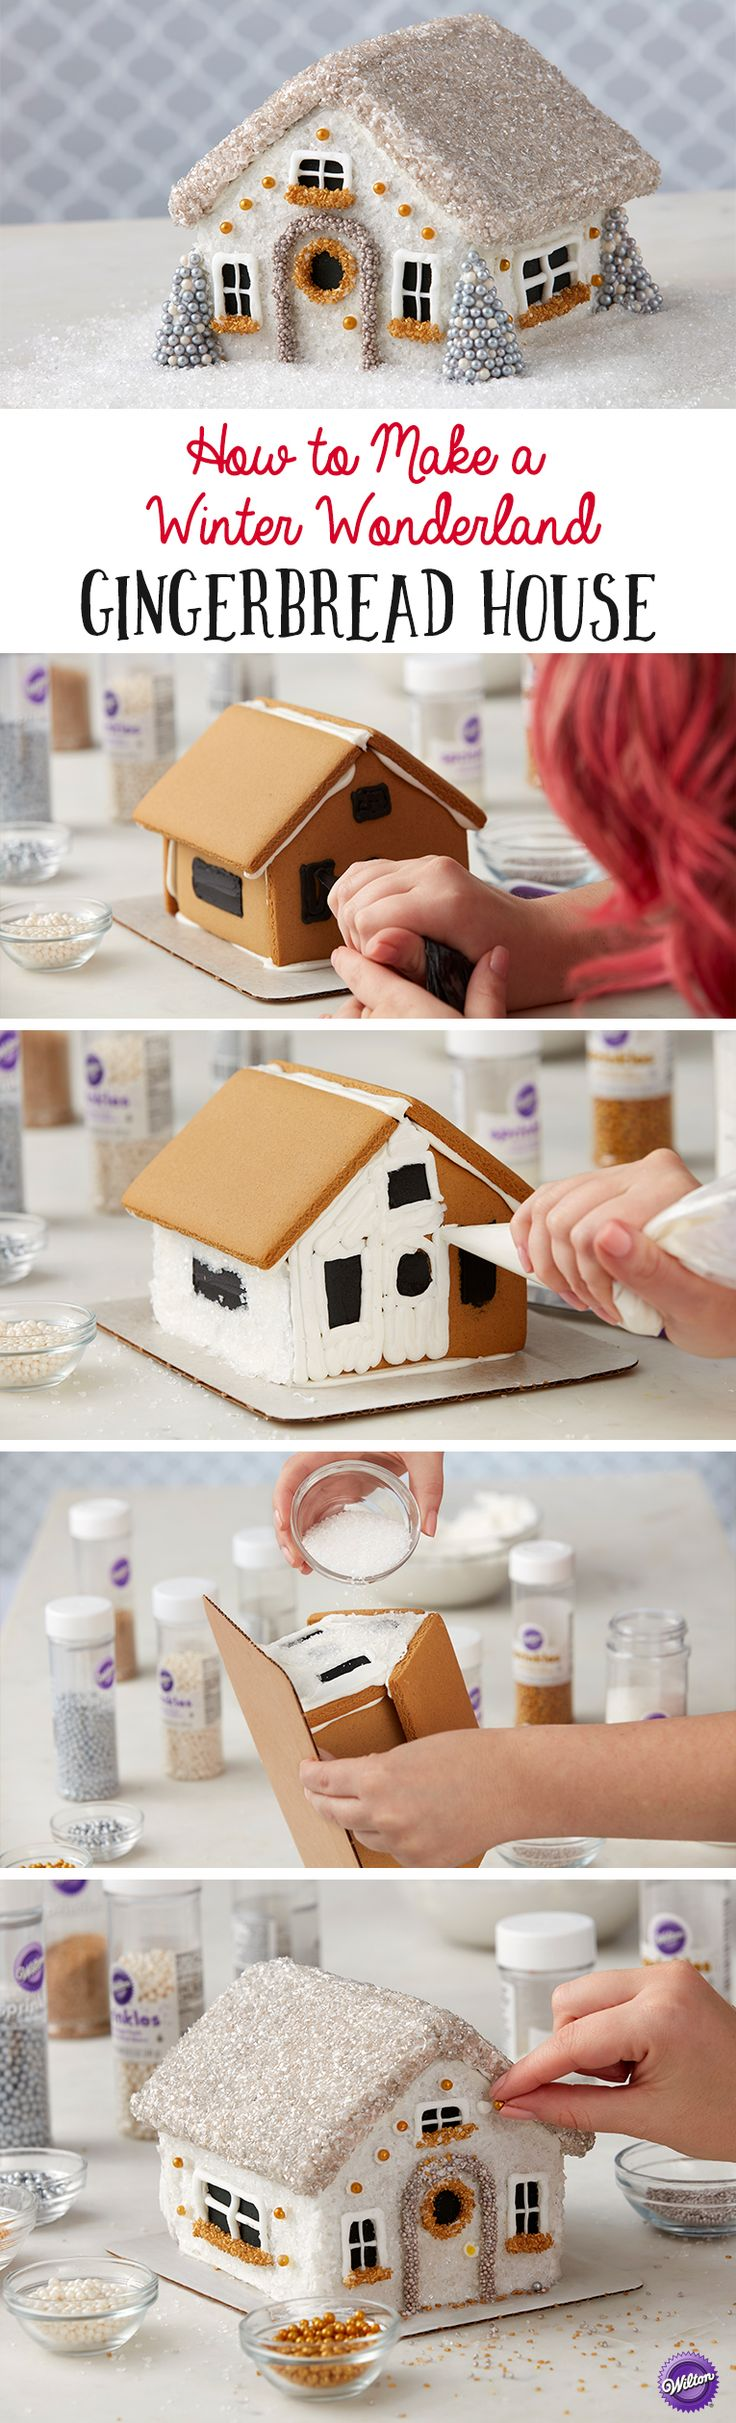 How to Make a Winter Wonderland Gingerbread House - Bring the magic and beauty of winter inside with this whimsical Winter Wonderland Gingerbread House. Decked out with a variety of gold and silver sprinkles and edible accents, this beautiful gingerbread house makes a stunning centerpiece for your holiday table!